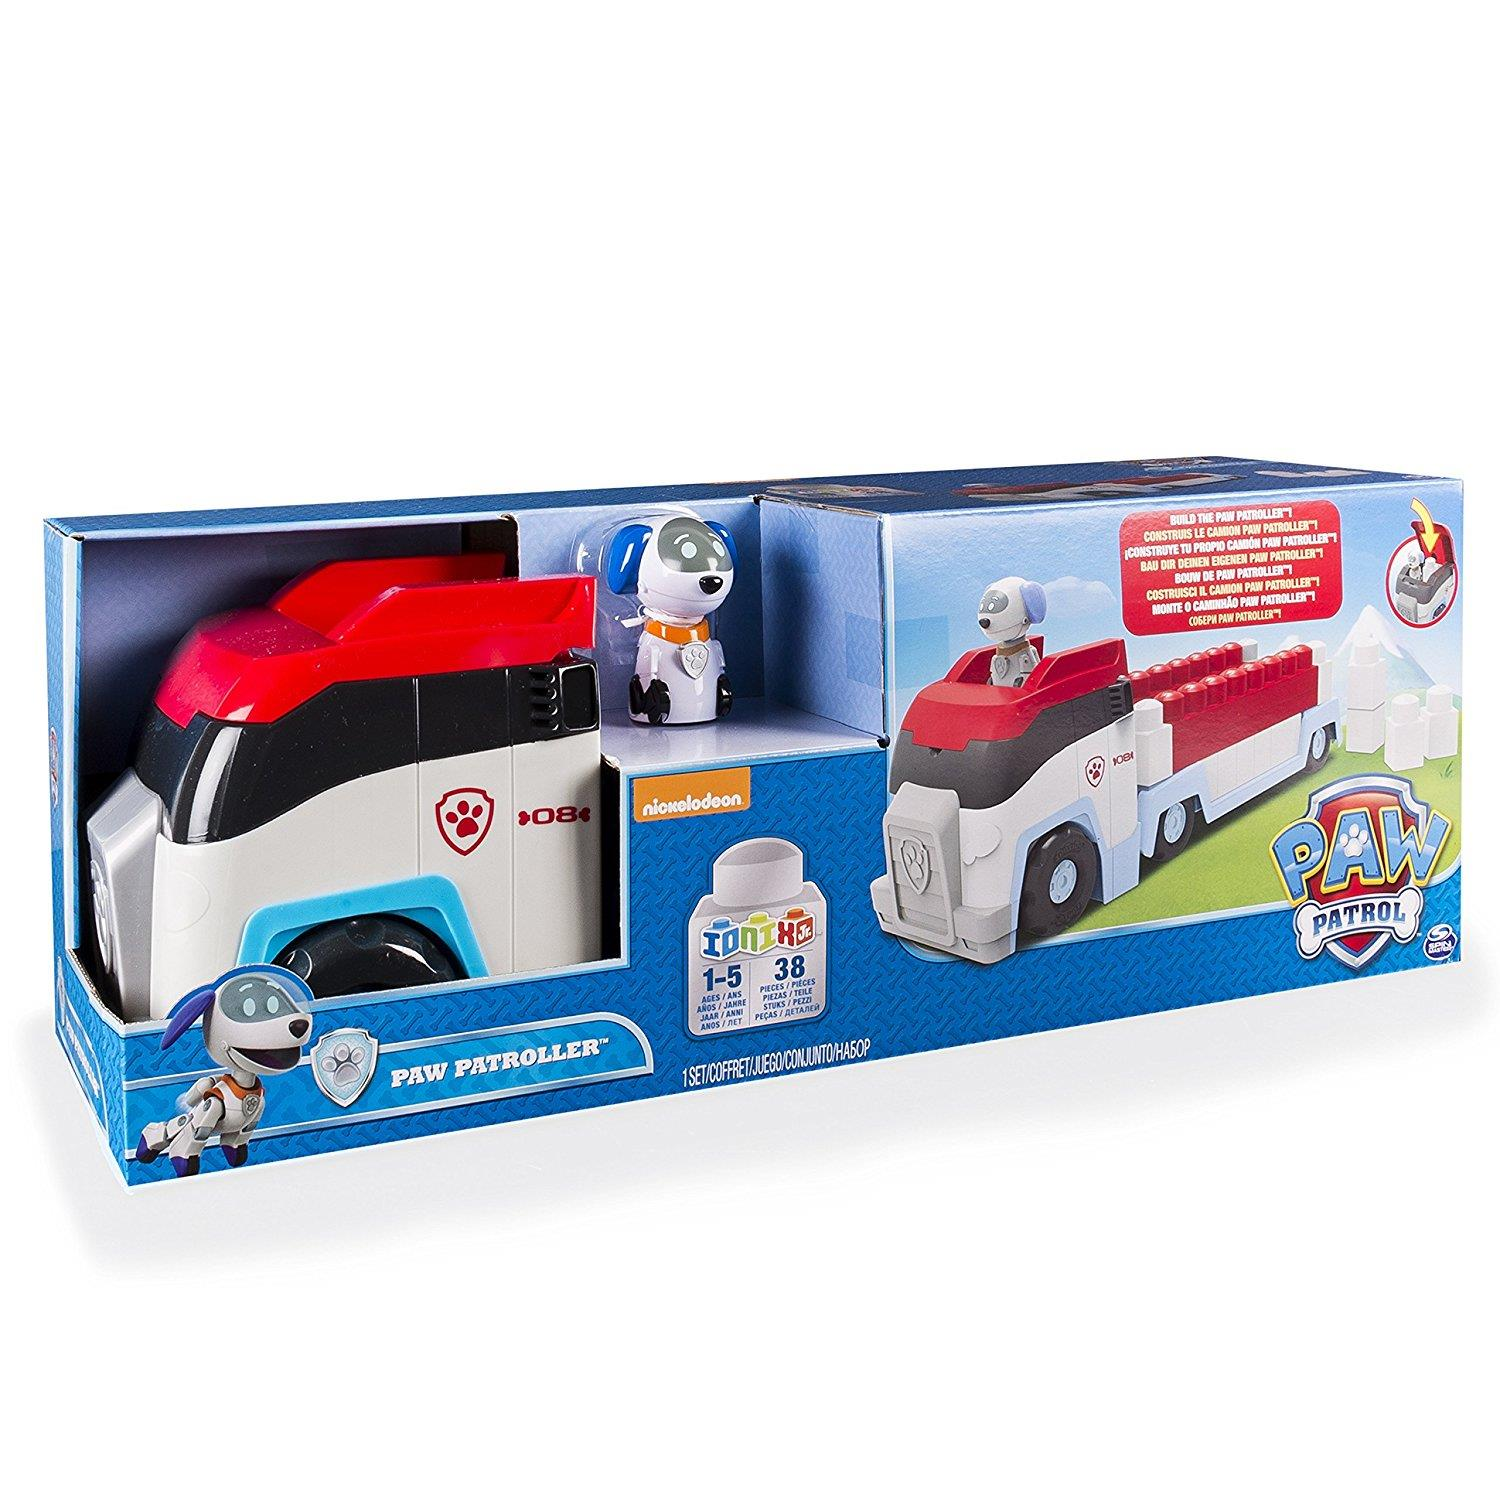 Playmobil Küche Toys R Us Spin Master 20074388 Paw Patrol Ionix Paw Patroller